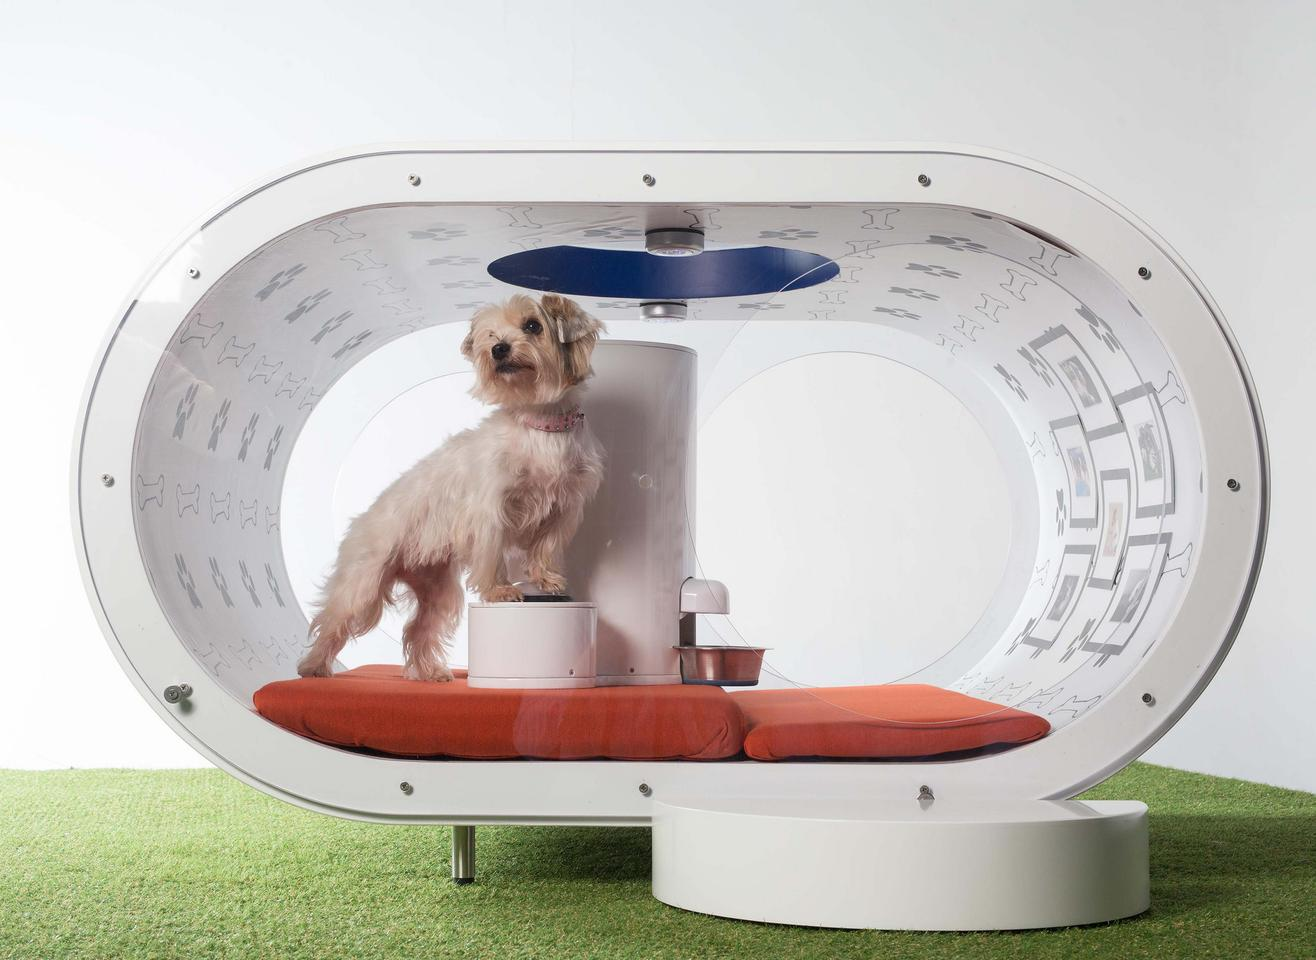 Samsung's Dream Doghouse, with occupant